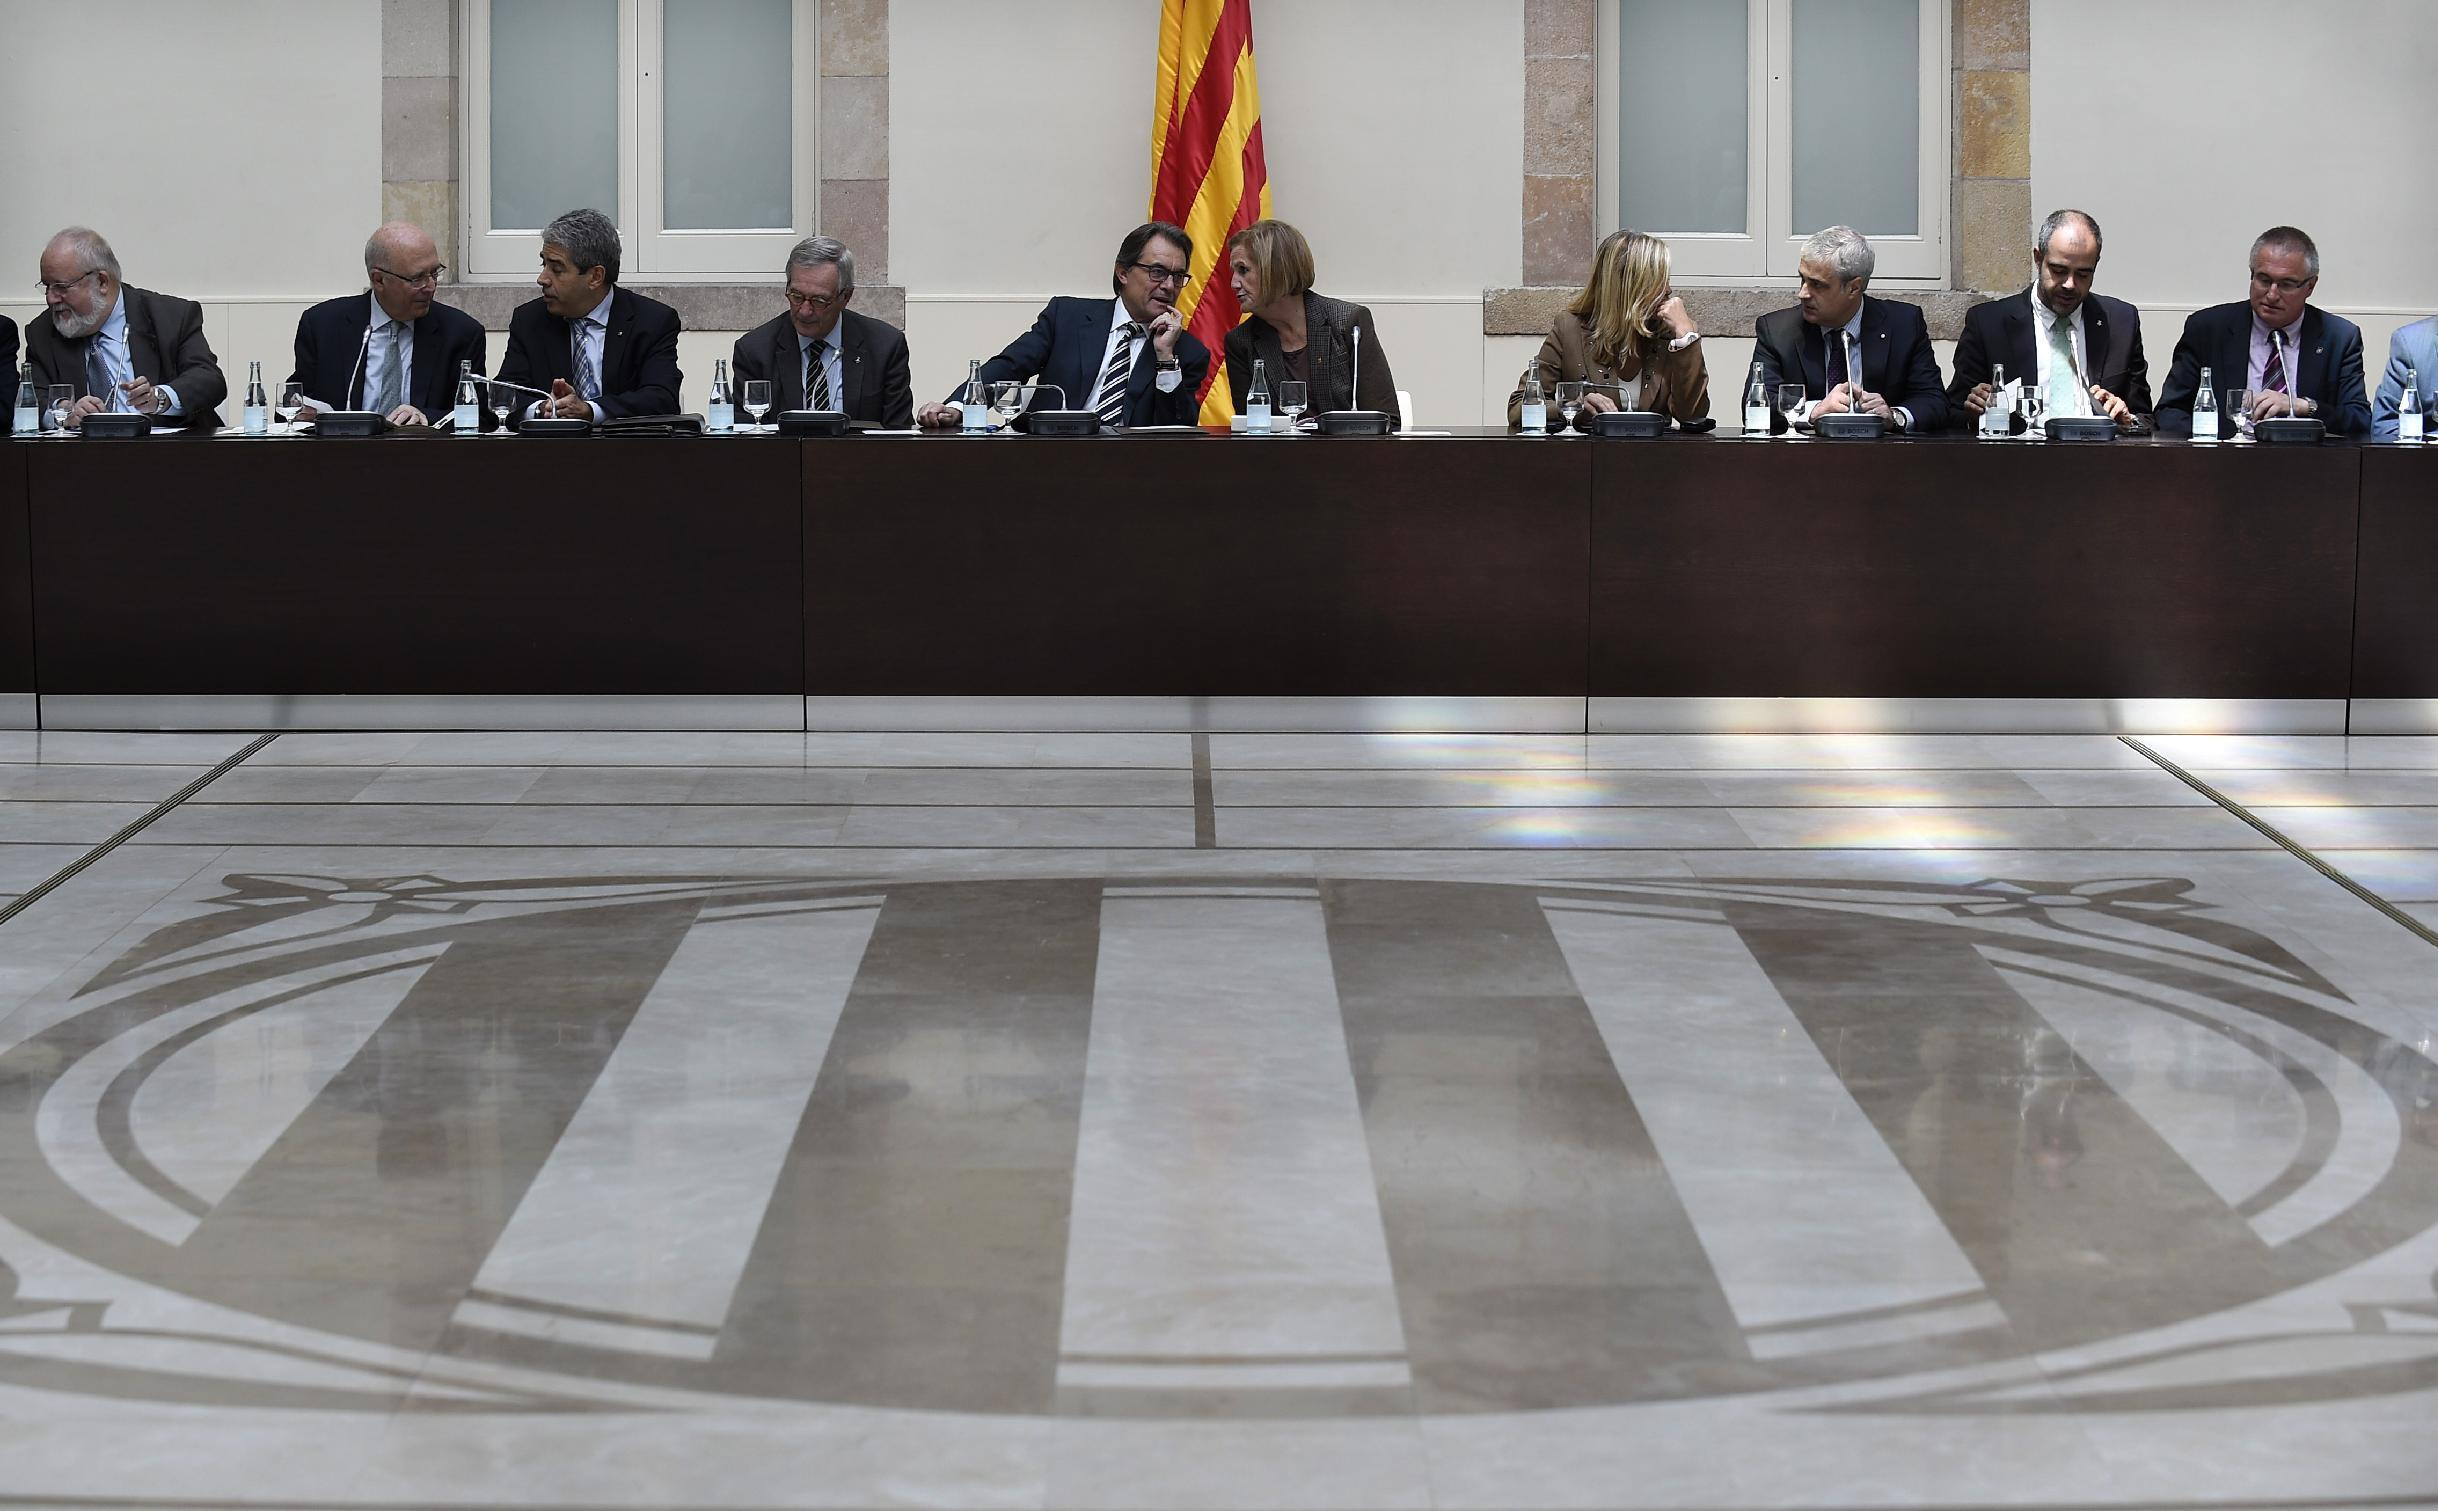 President of Catalonia's regional government Artur Mas (C-L) talks with Catalan Parliament's president Nuria de Gispert (C-R) during a meeting at the Catalan Parliament in Barcelona on November 7, 2014 (AFP Photo/Lluis Gene)